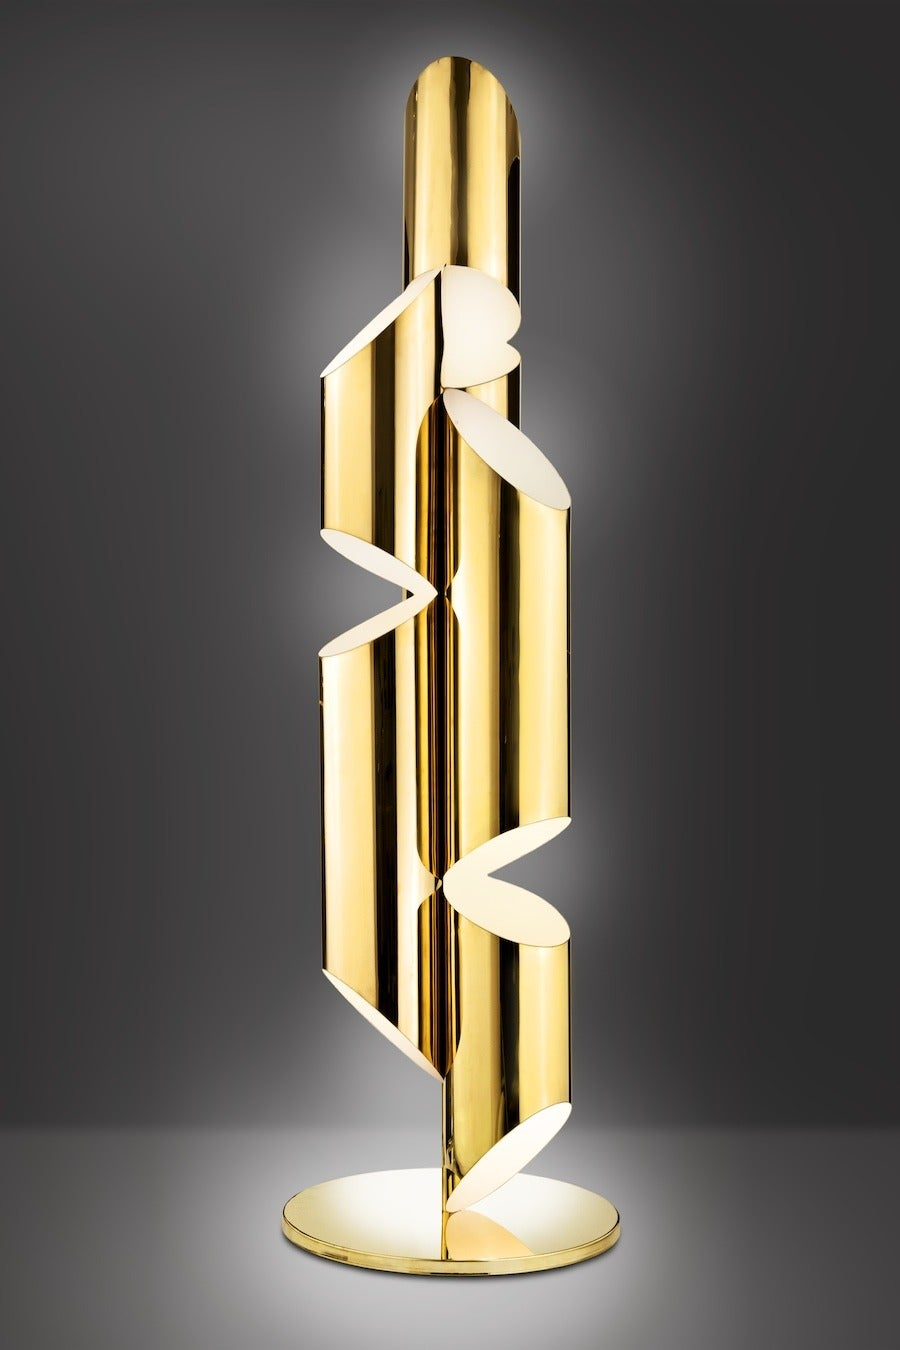 Inspired by church organ pipes, this seven-foot floor lamp or sculpture is fabricated from mirror-polished brass. Incandescent light fills each tube and glows out from strategically placed slits creating a warm and inviting Ambience. Designed in